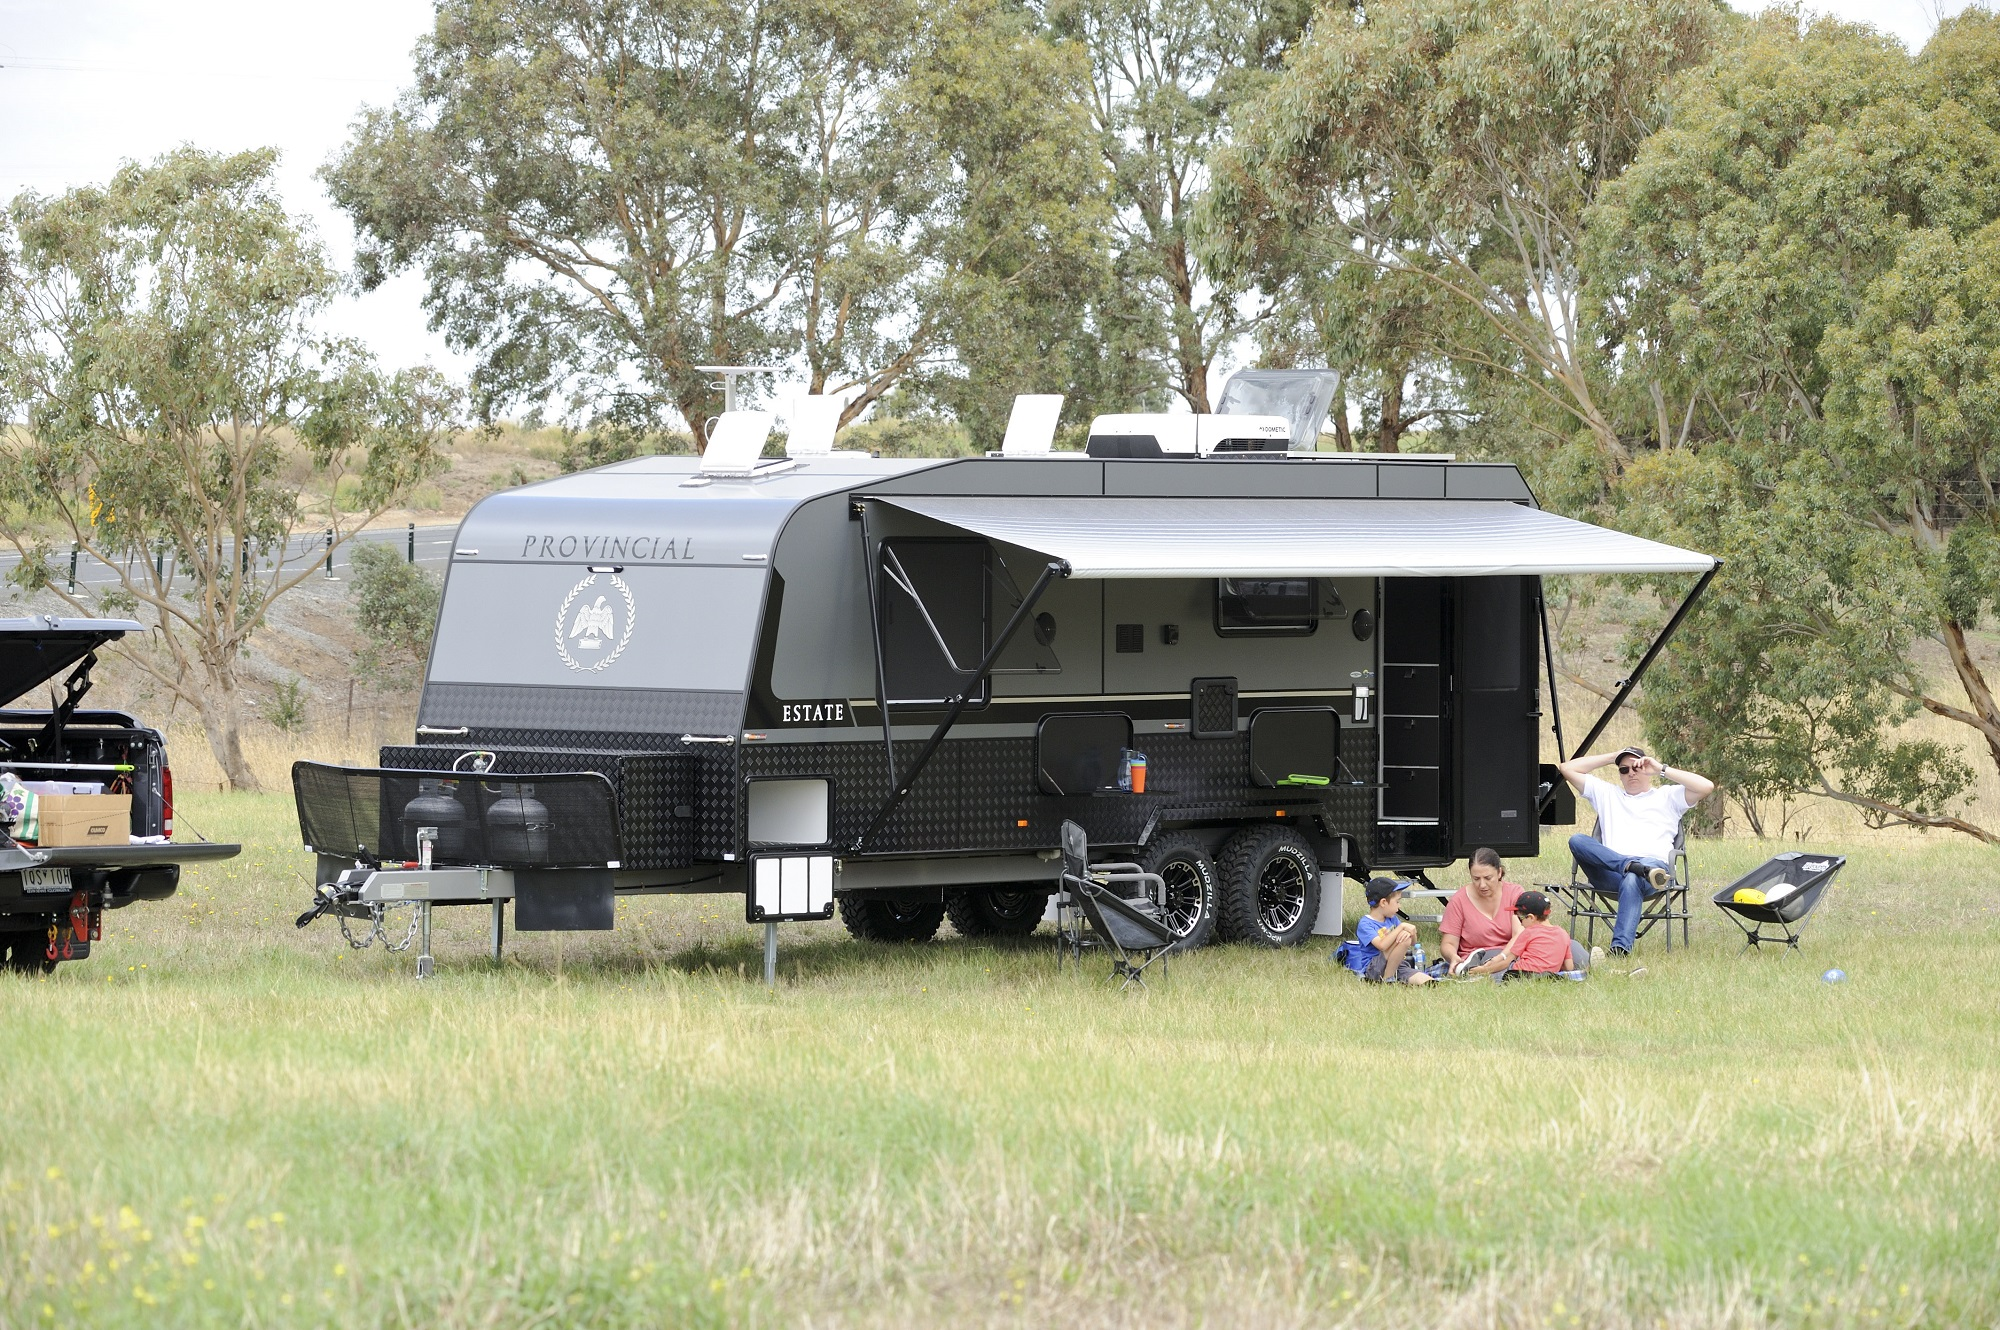 Caravan Review: Provincial Estate family bunk van